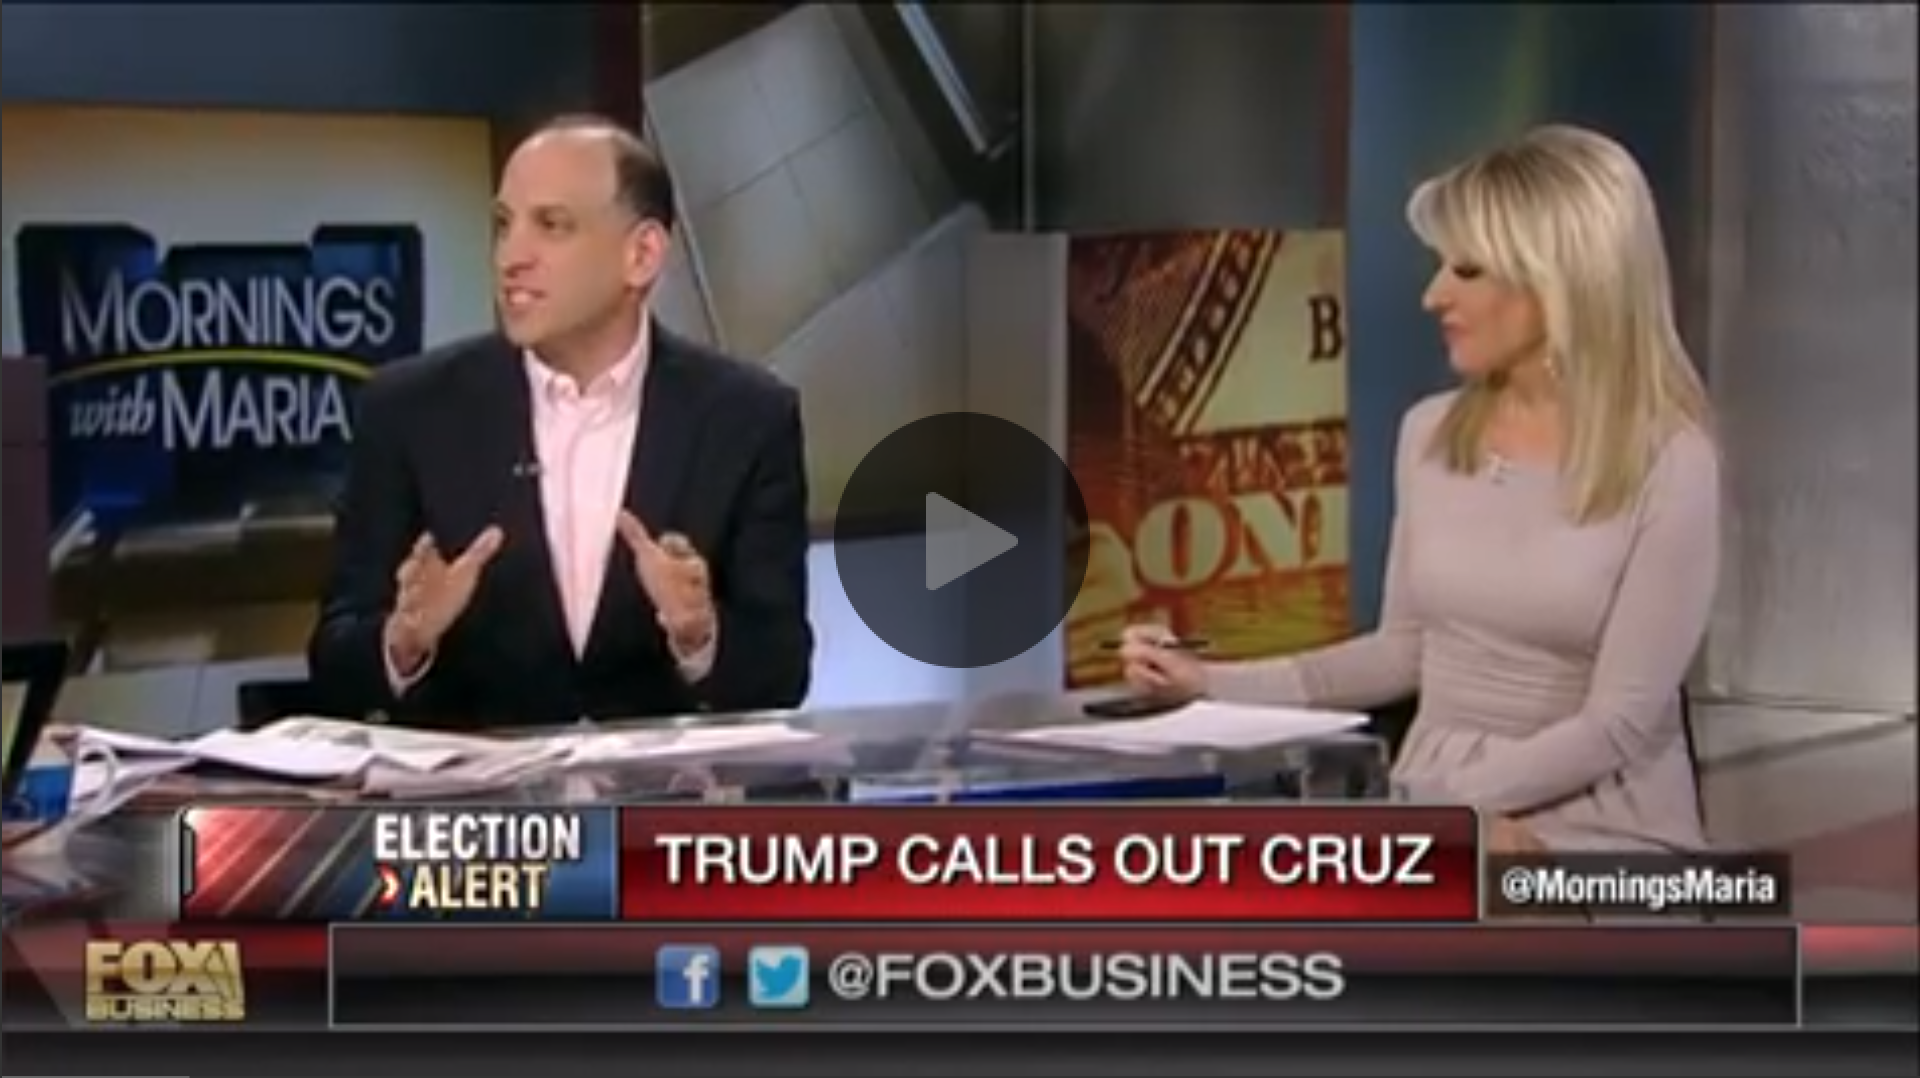 Mike Berland on Mornings with Maria talks Trump's campaign strategy